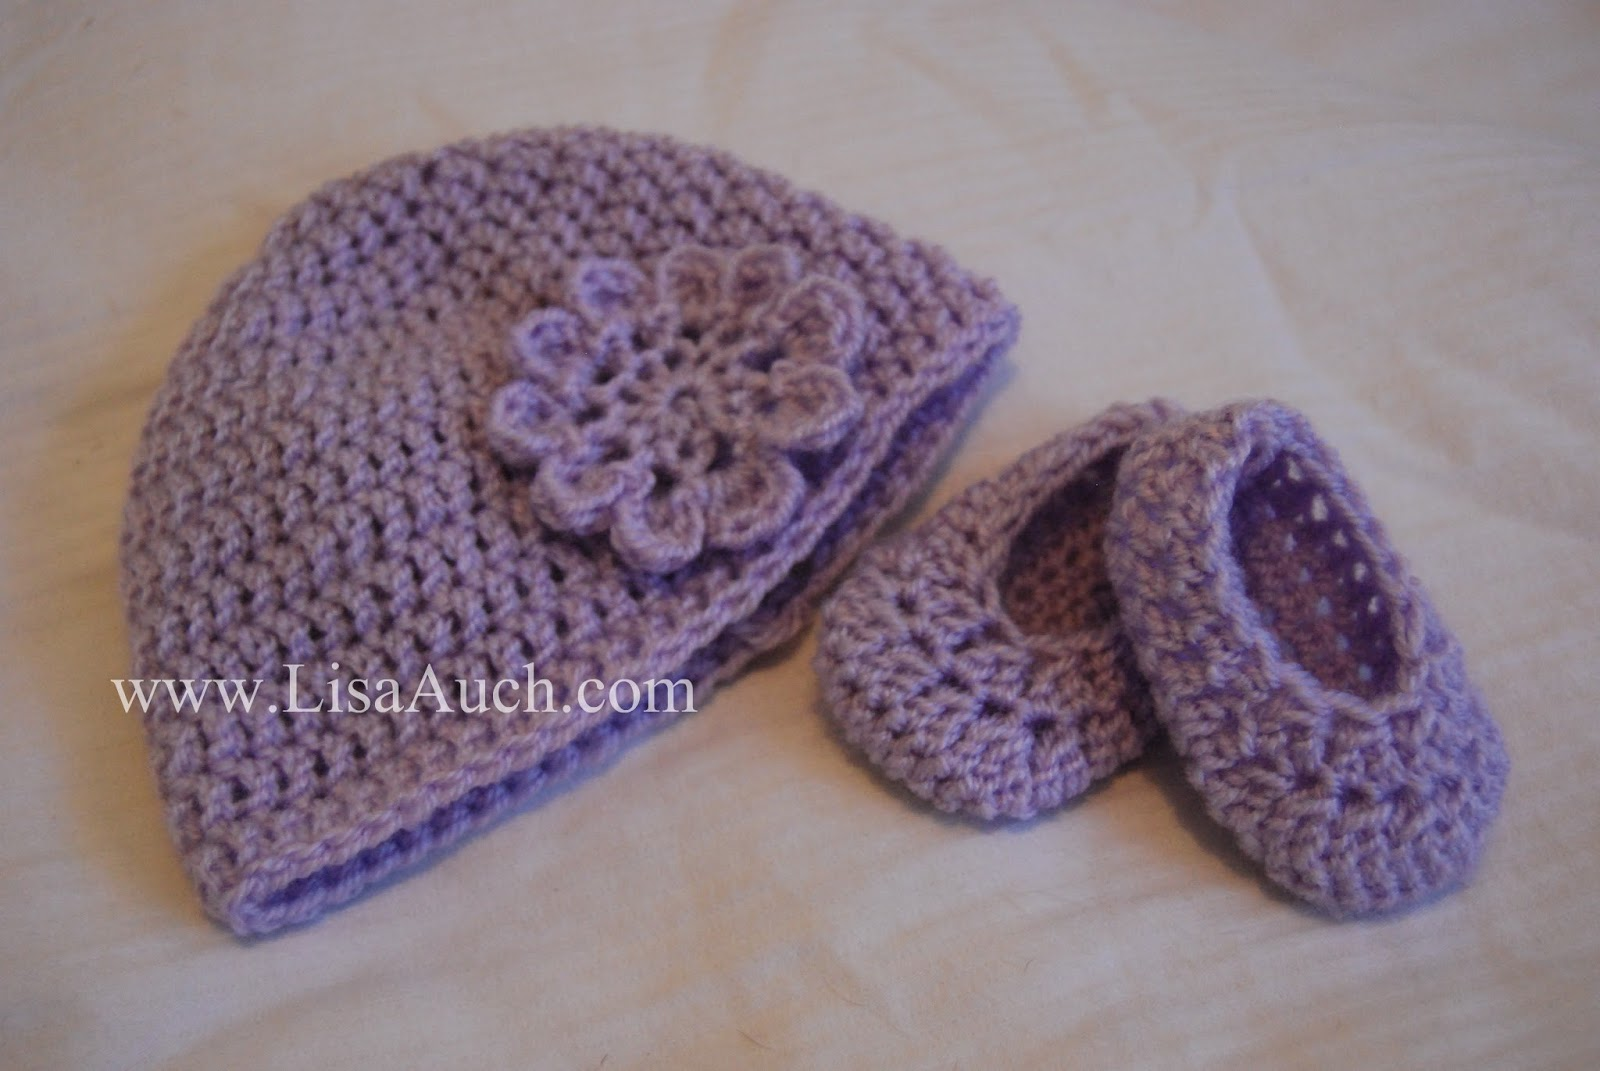 Crochet Patterns Designs Lisaauch June